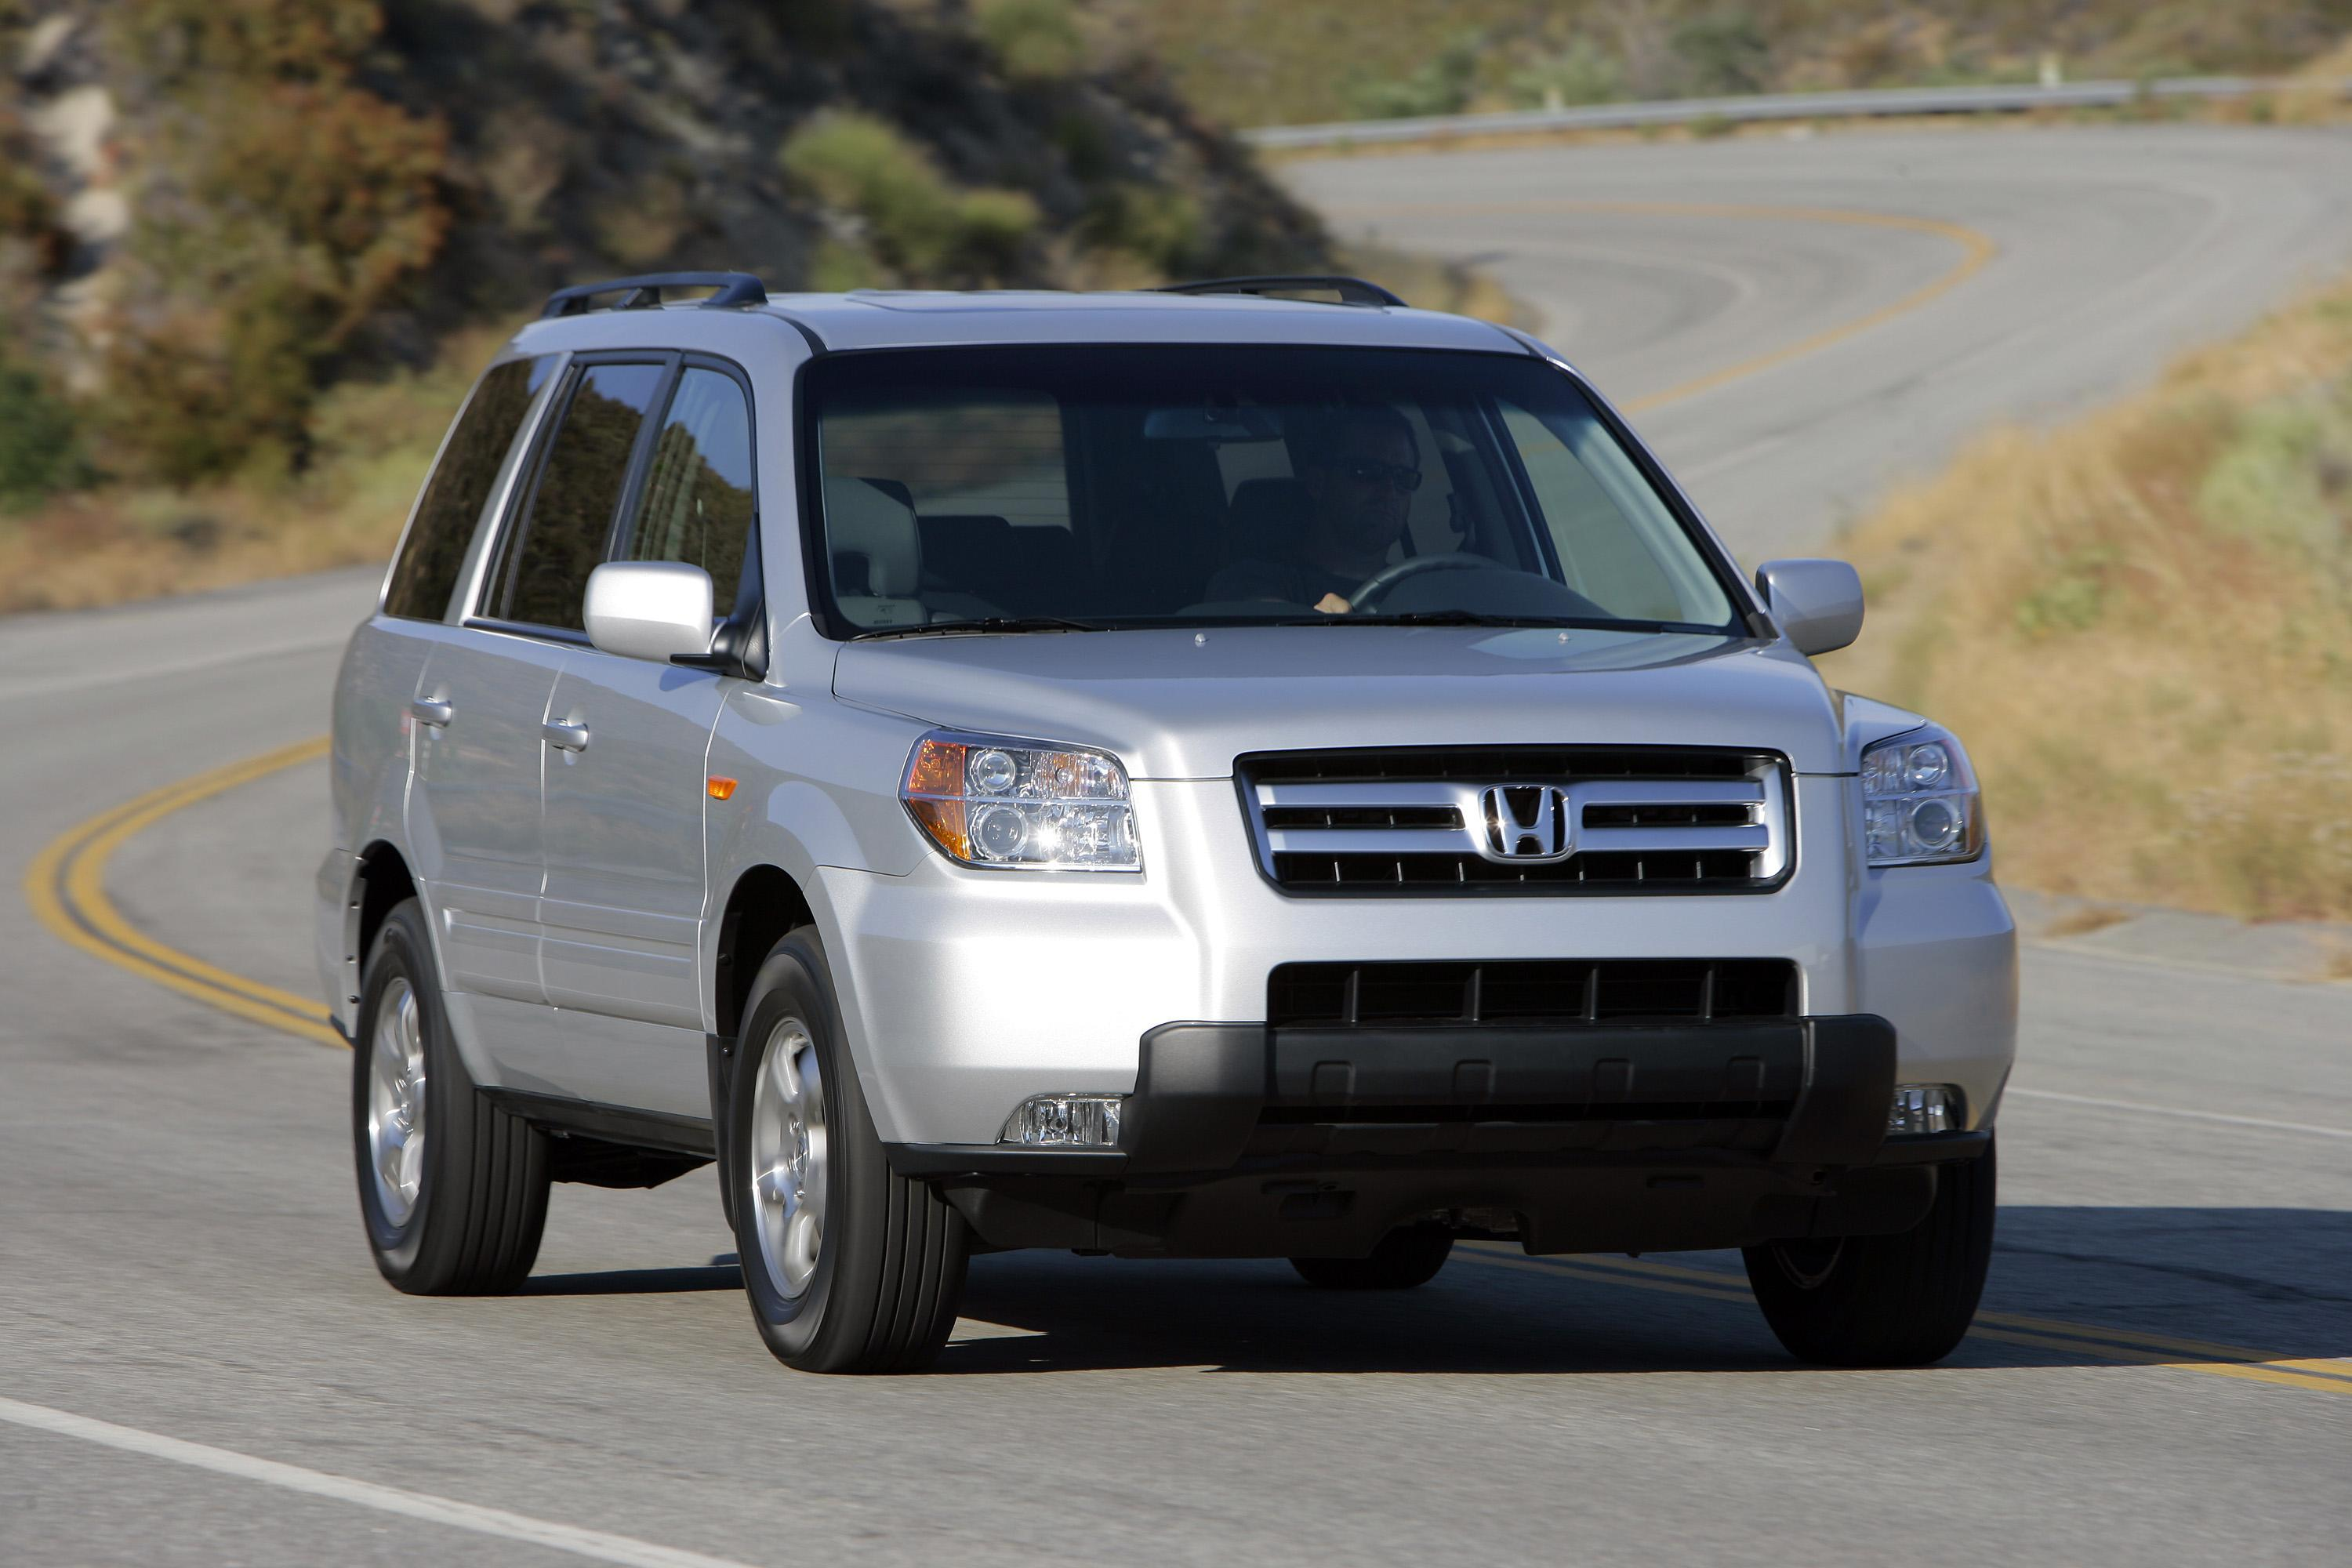 Find 4,792 used honda pilot as low as $2,500 on carsforsale.com®. 2007 Honda Pilot | Top Speed